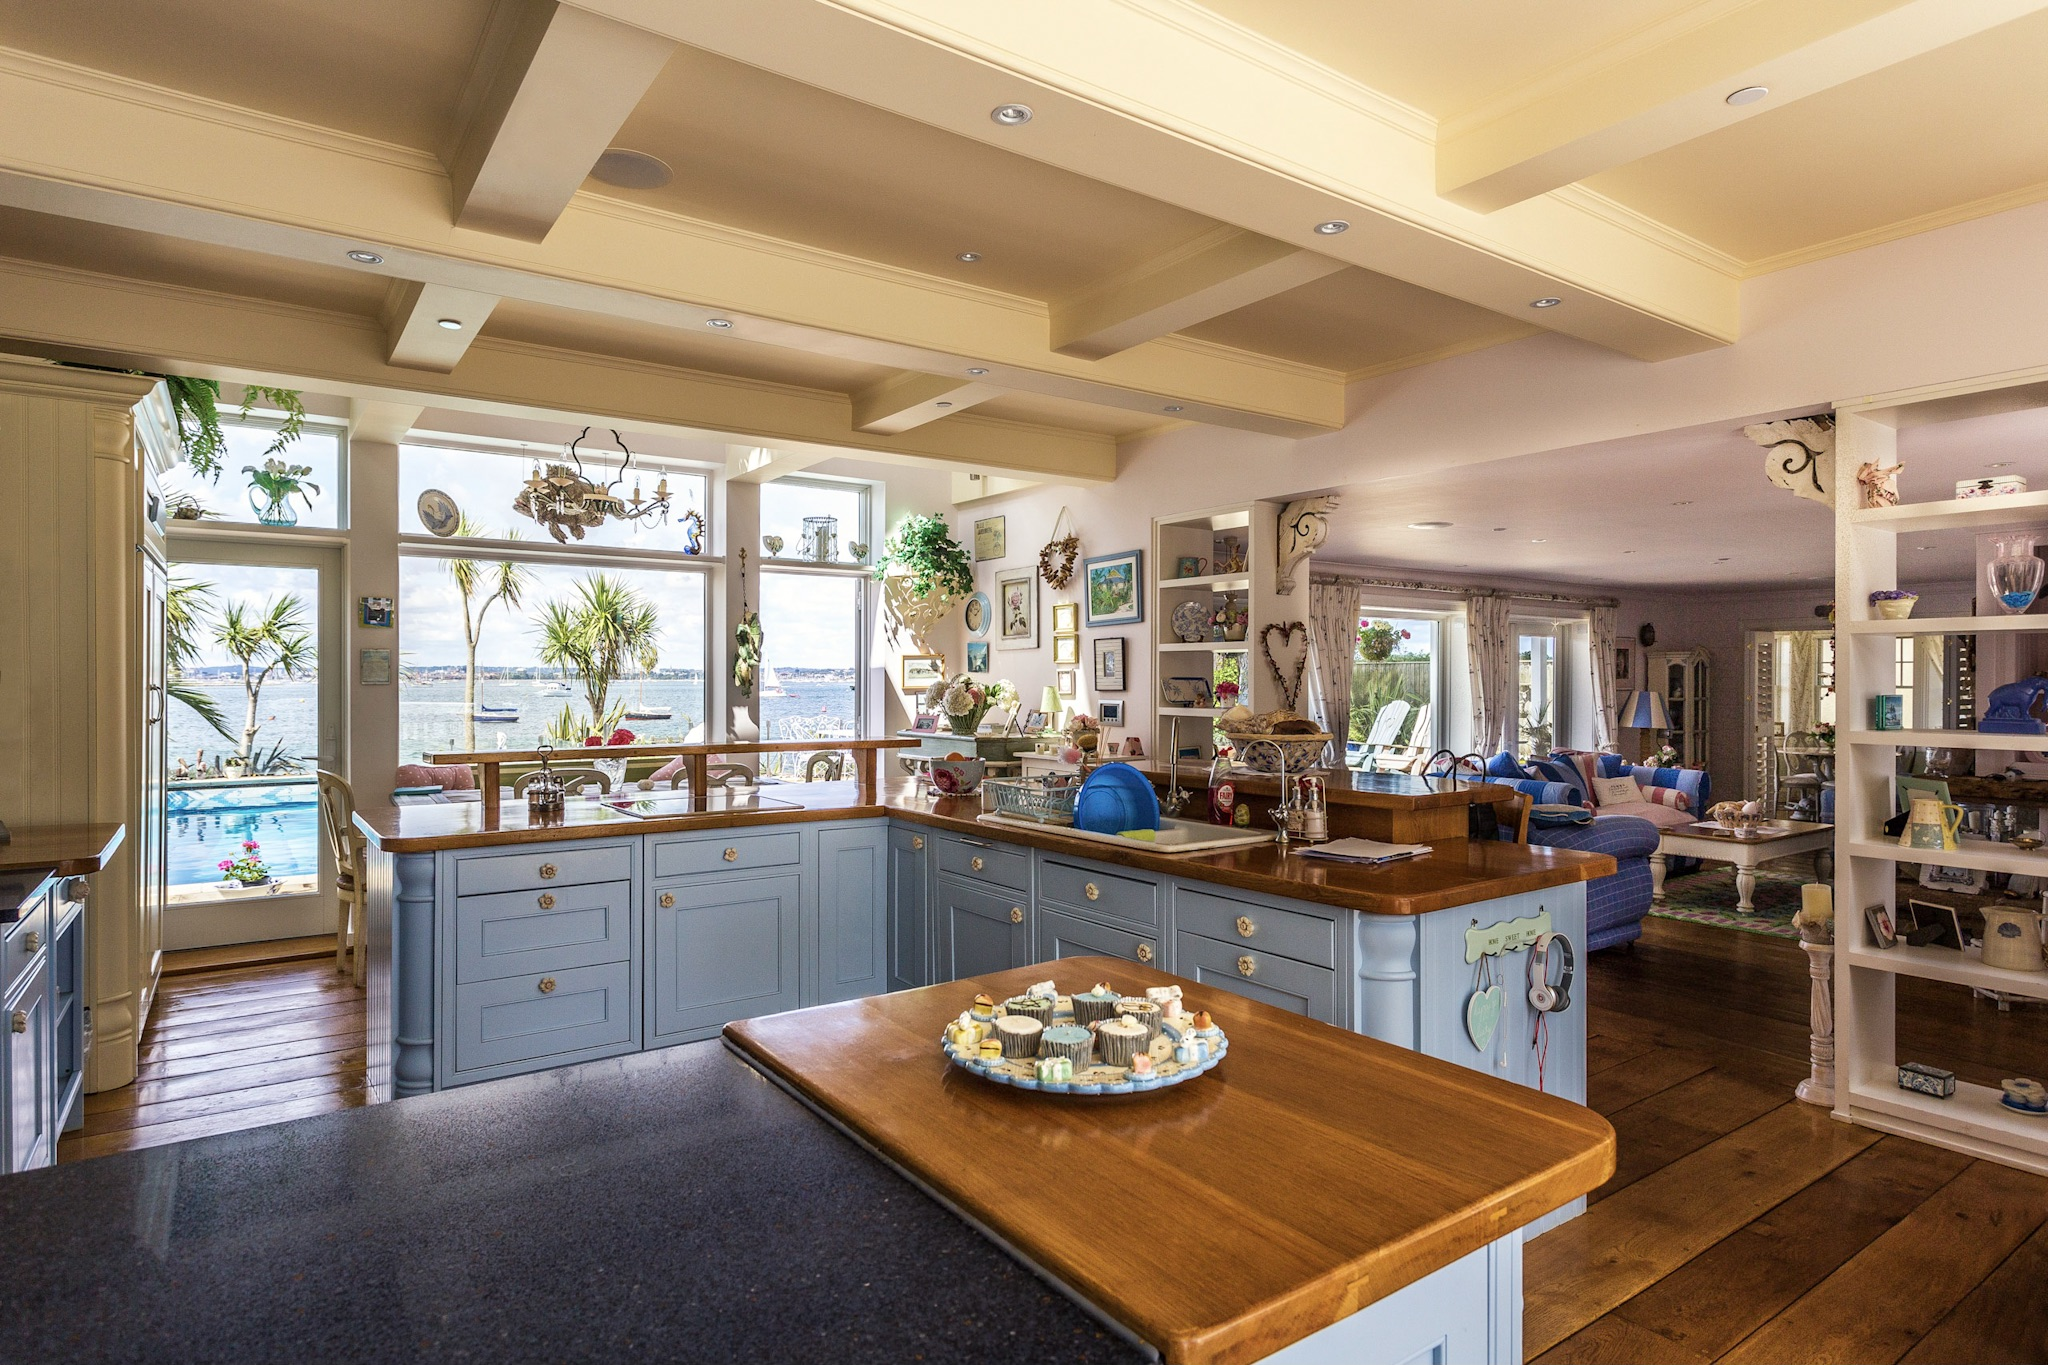 Kitchen by Rick McEvoy interior photographer in Sandbanks